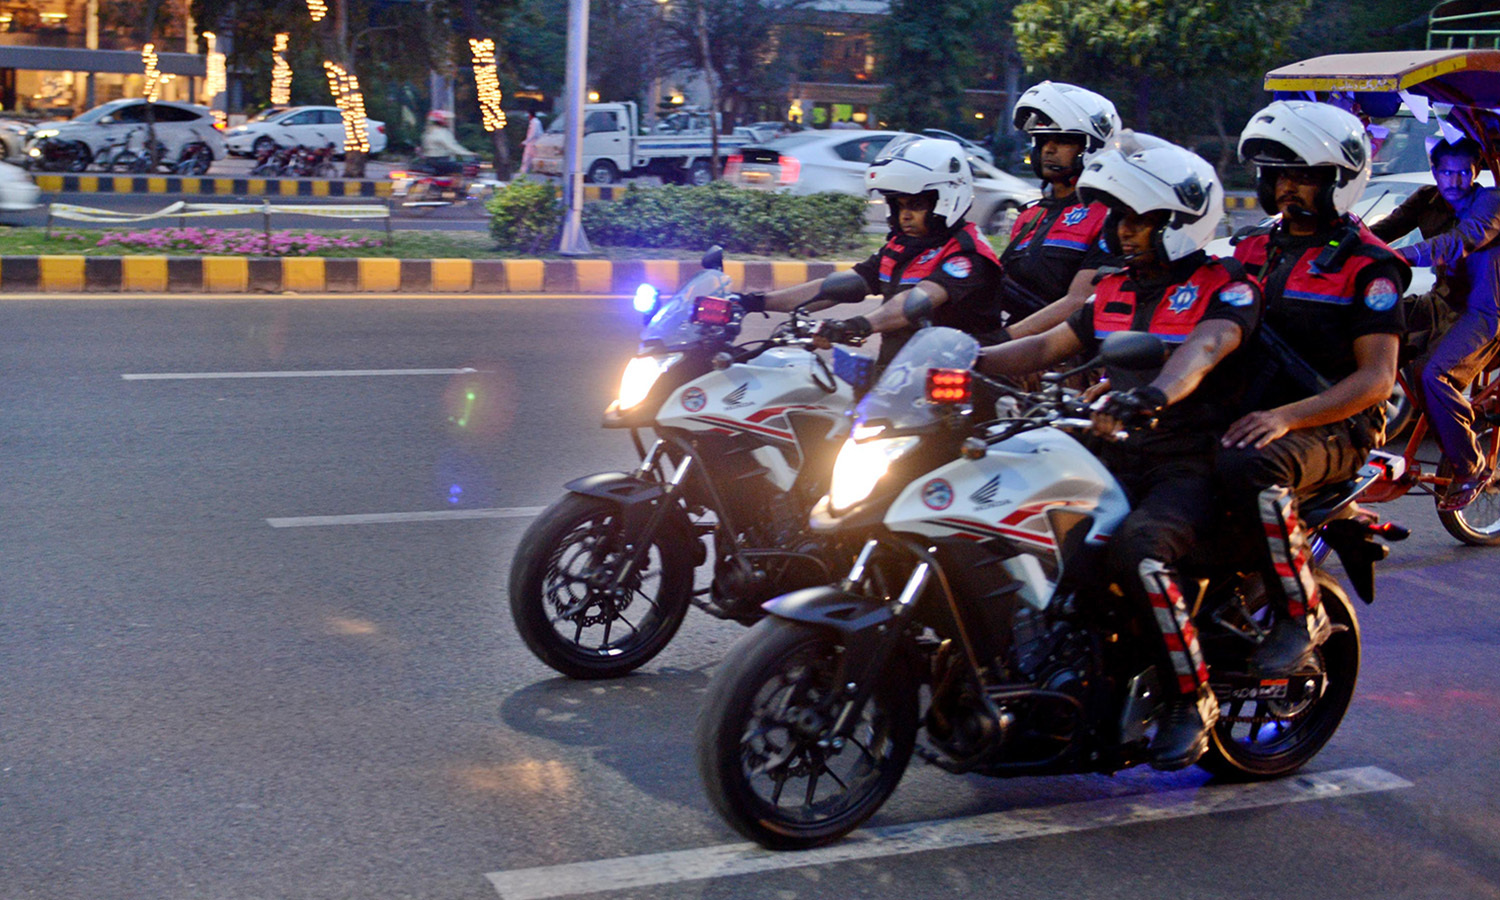 Dolphin street crime control force patrolling on their first day on the job. —Photo by Azhar Jafri/White Star